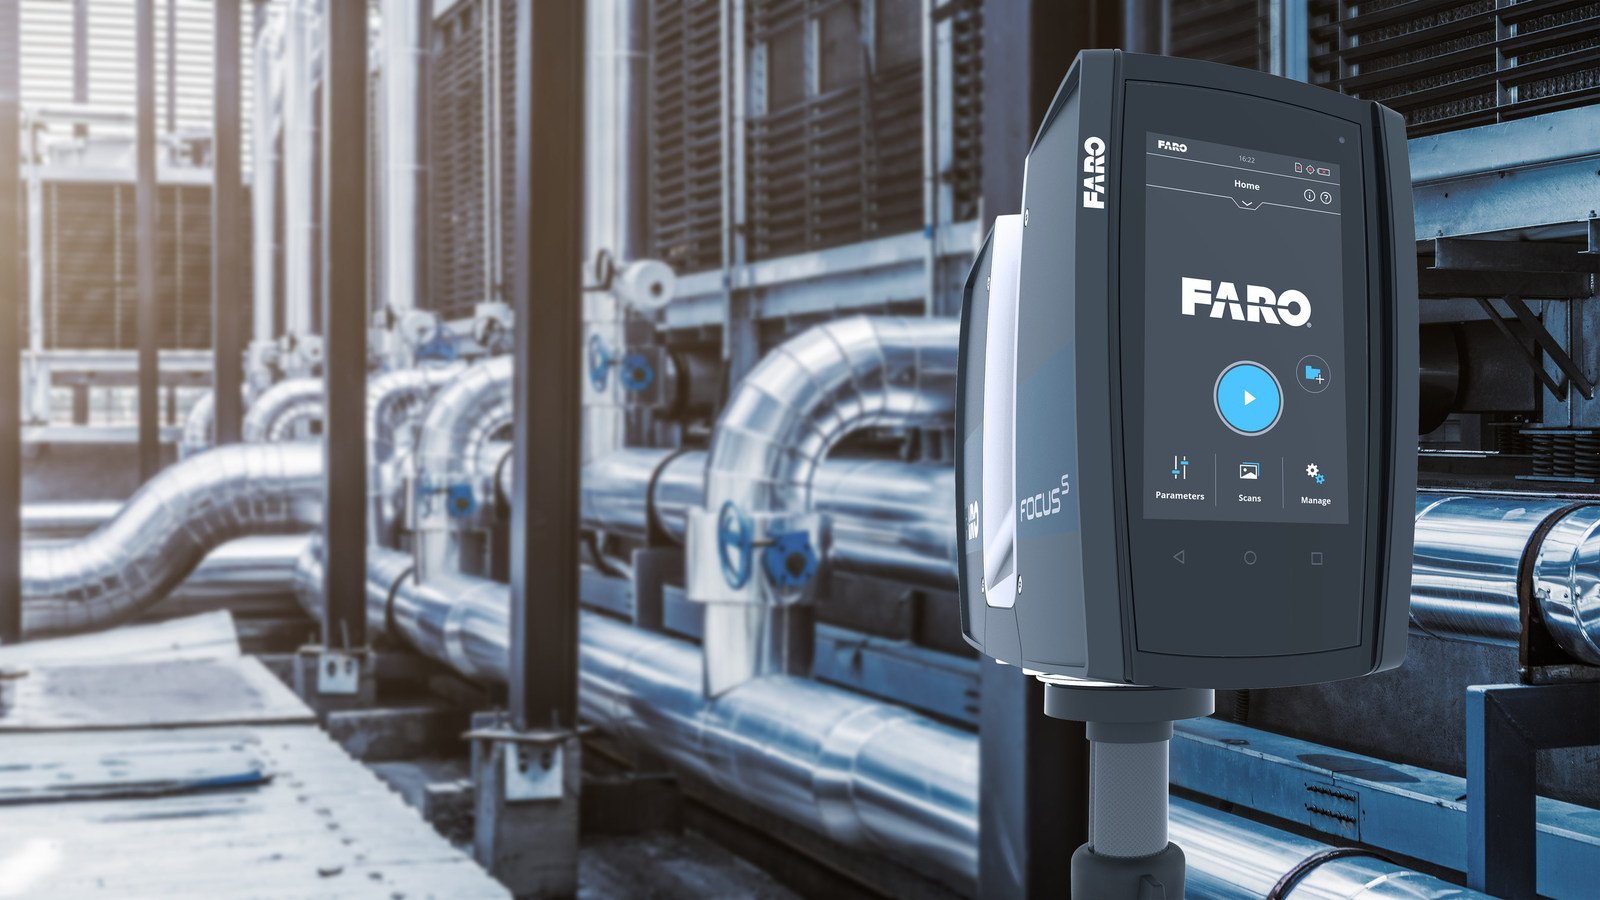 Industrial plants require professional-grade laser scanners such as the FARO Focus S 70 for dependable performance.(Image credit: FARO)